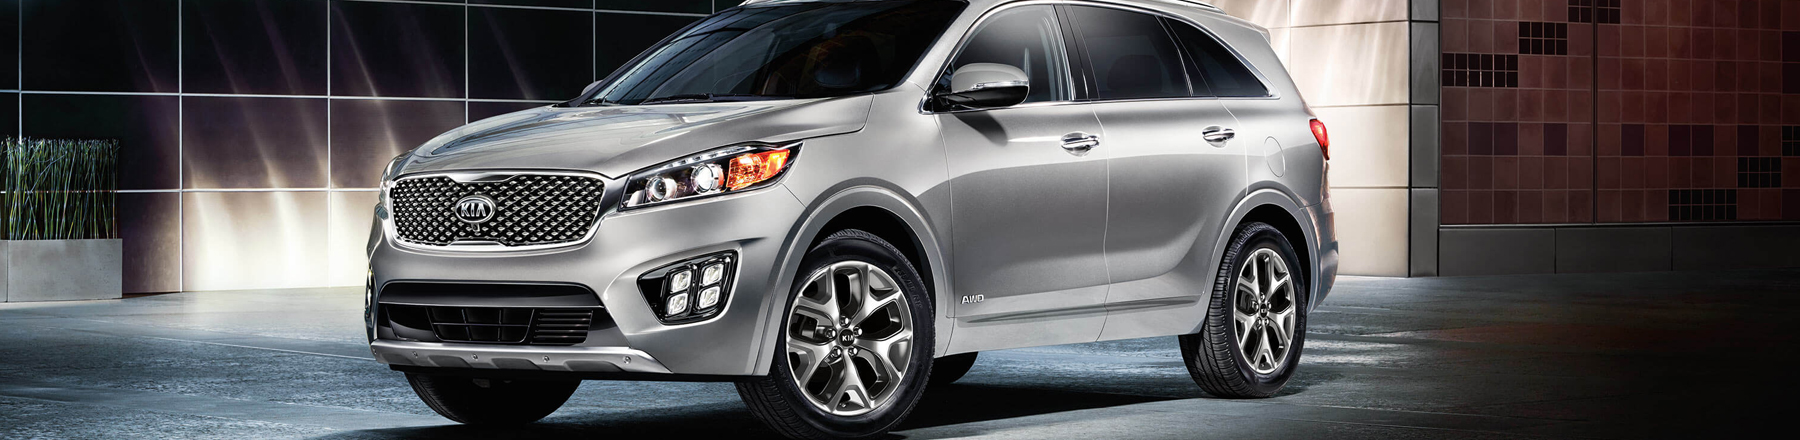 Kia Finance Bad Credit >> Get Auto Financing In Kamloops With Bad Credit On All Our New Kias